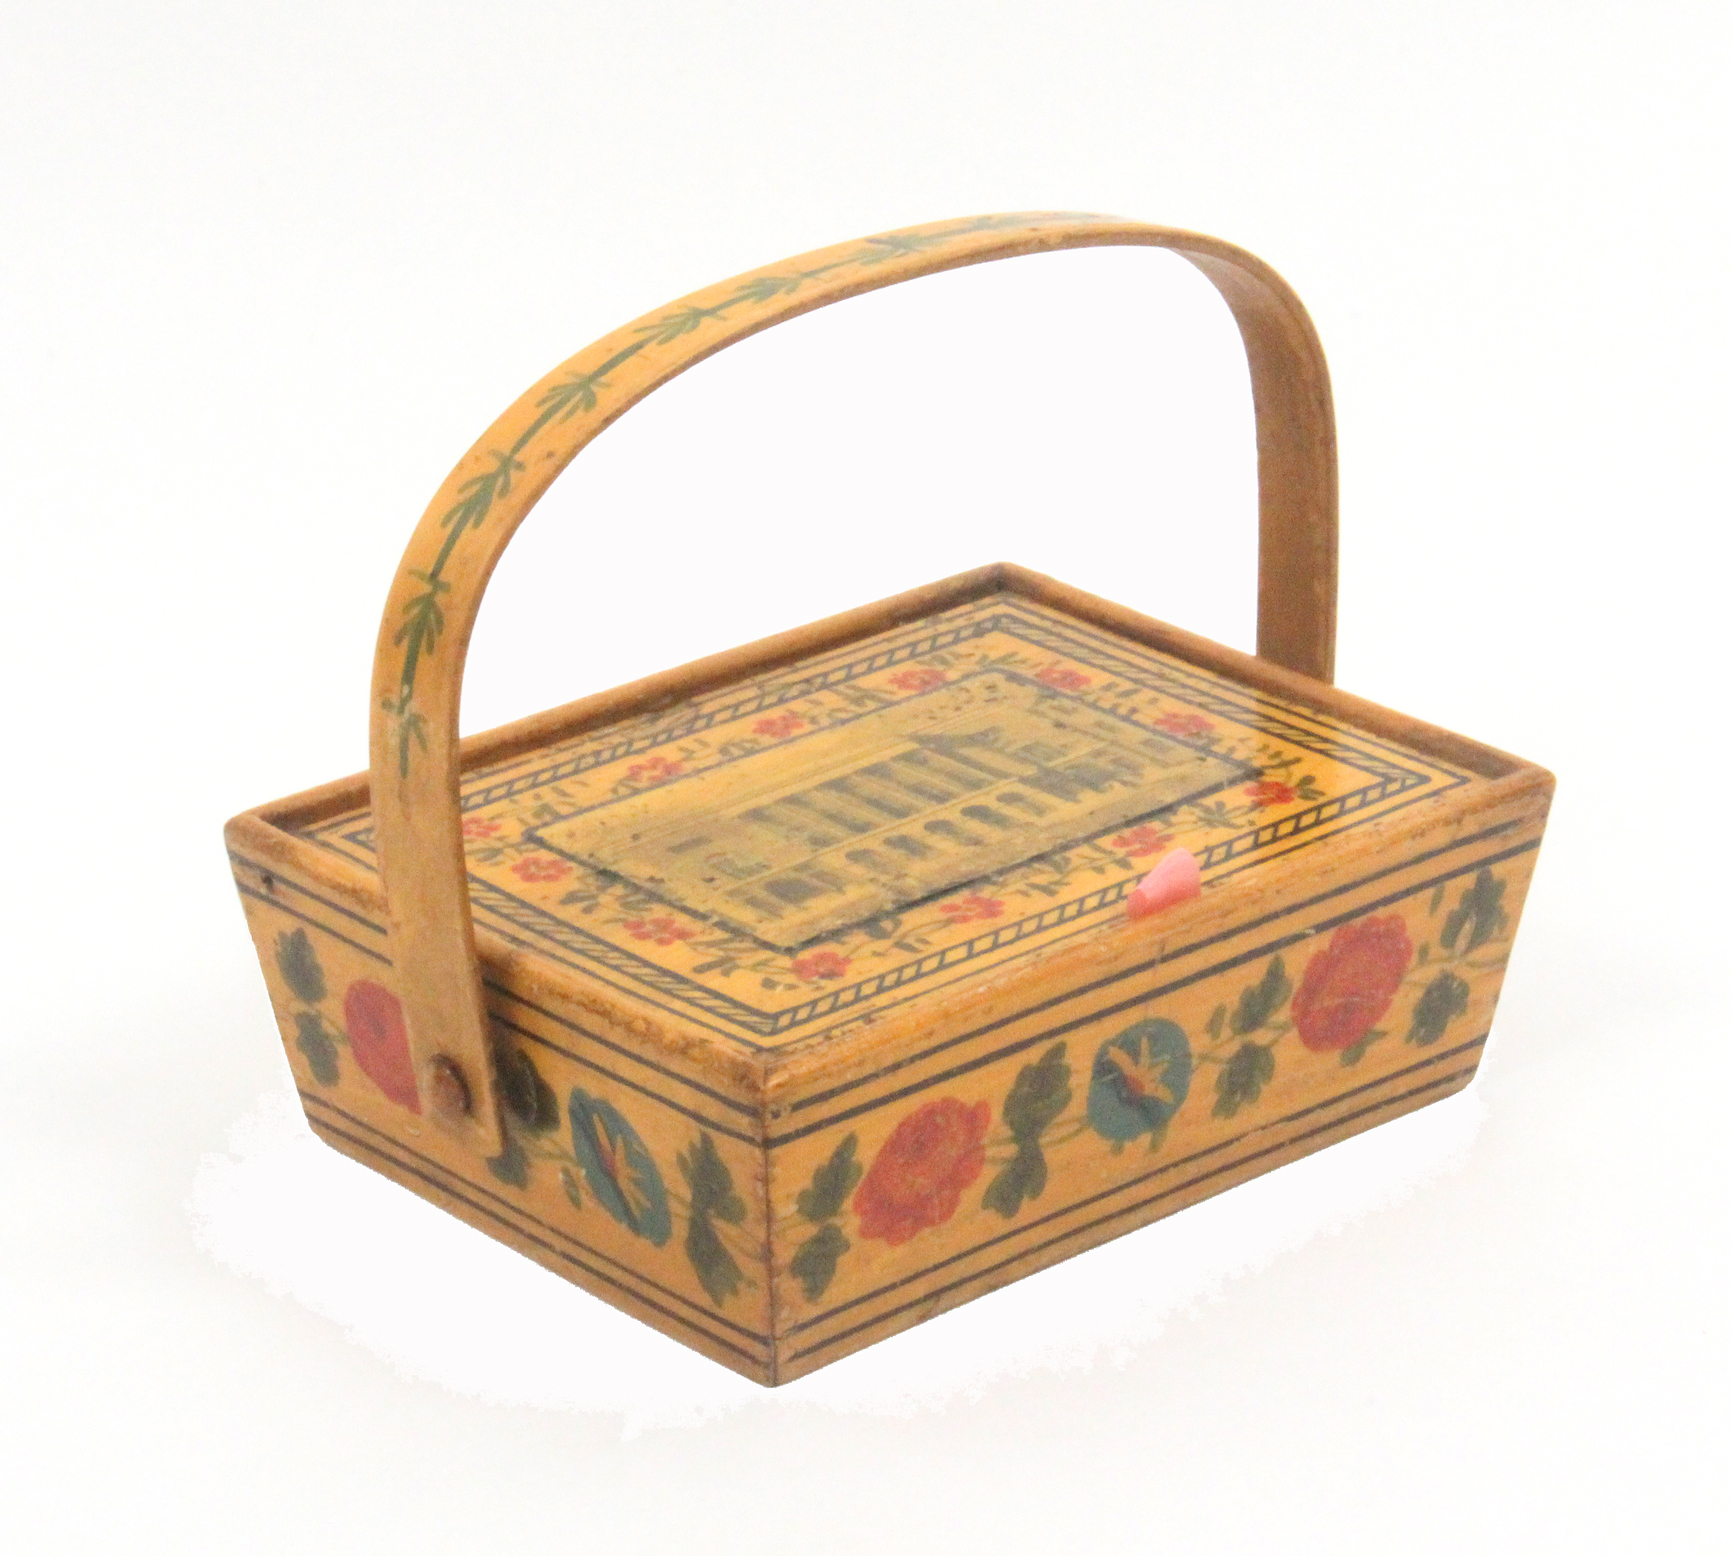 A rare print and paint decorated early Tunbridge ware whitewood child's sewing pannier, probably